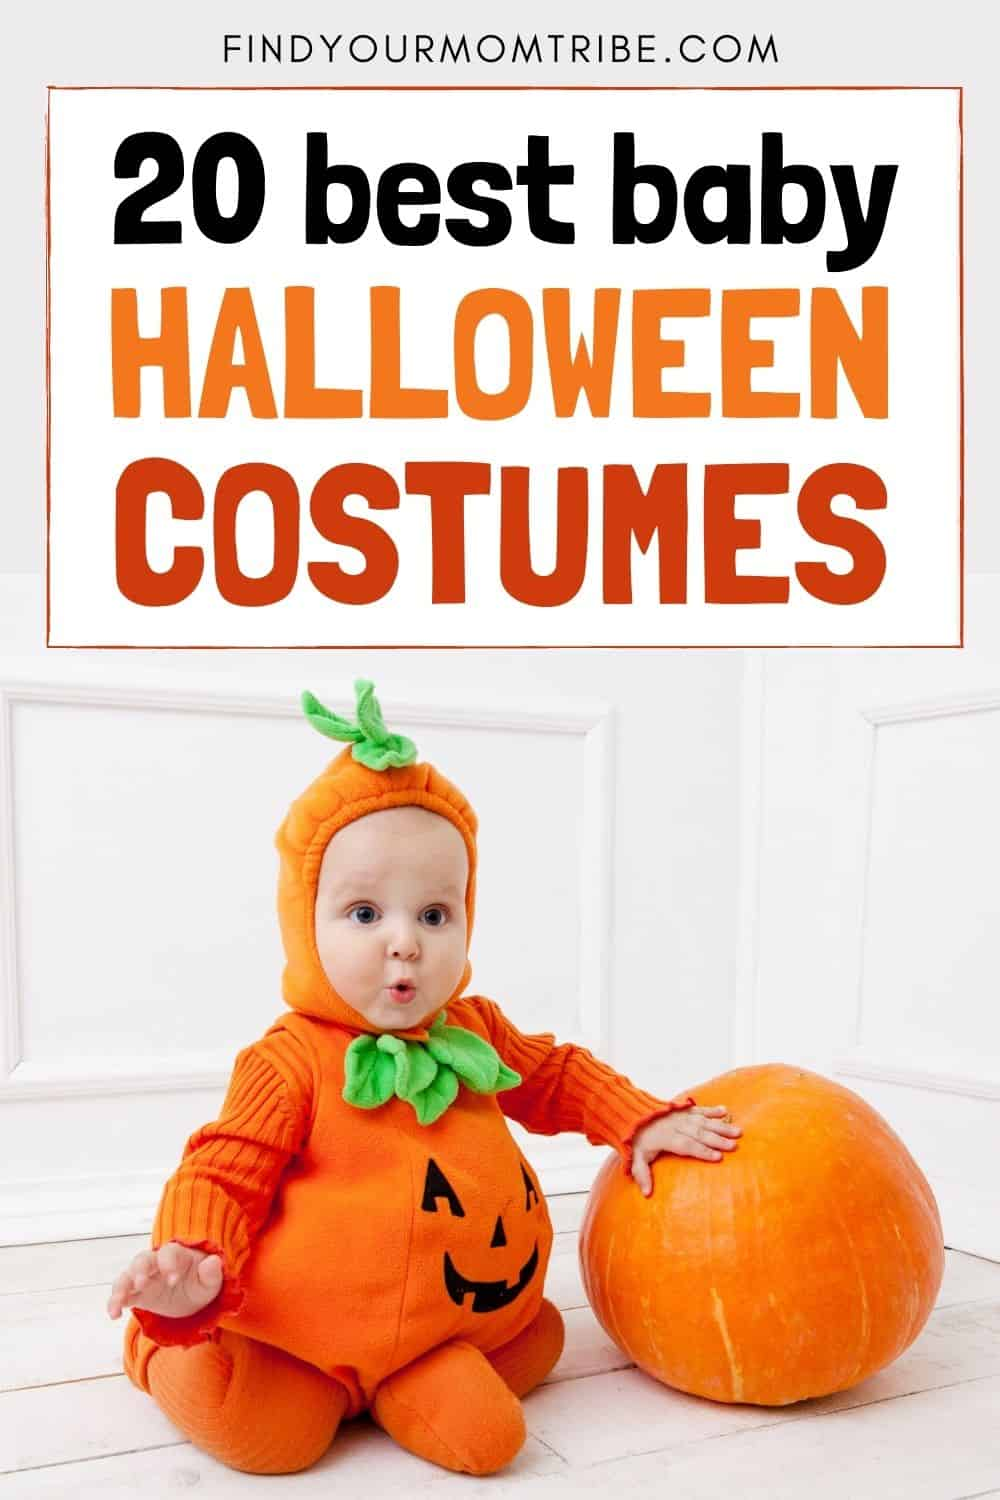 20 Best Baby Halloween Costumes Pinterest